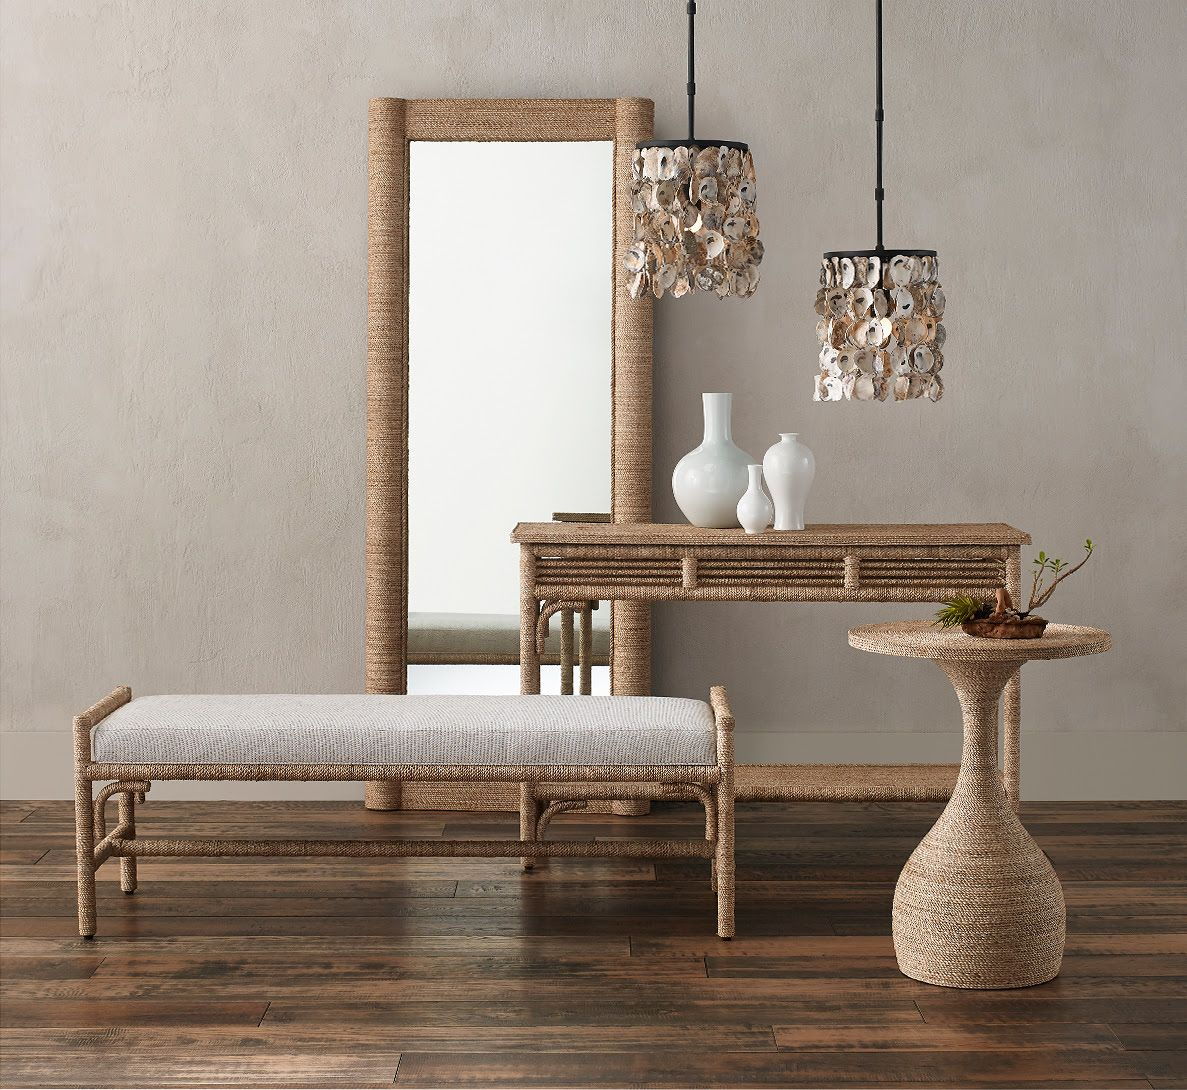 Hand Wrapped Abaca Rope Furniture in 2020 Home decor